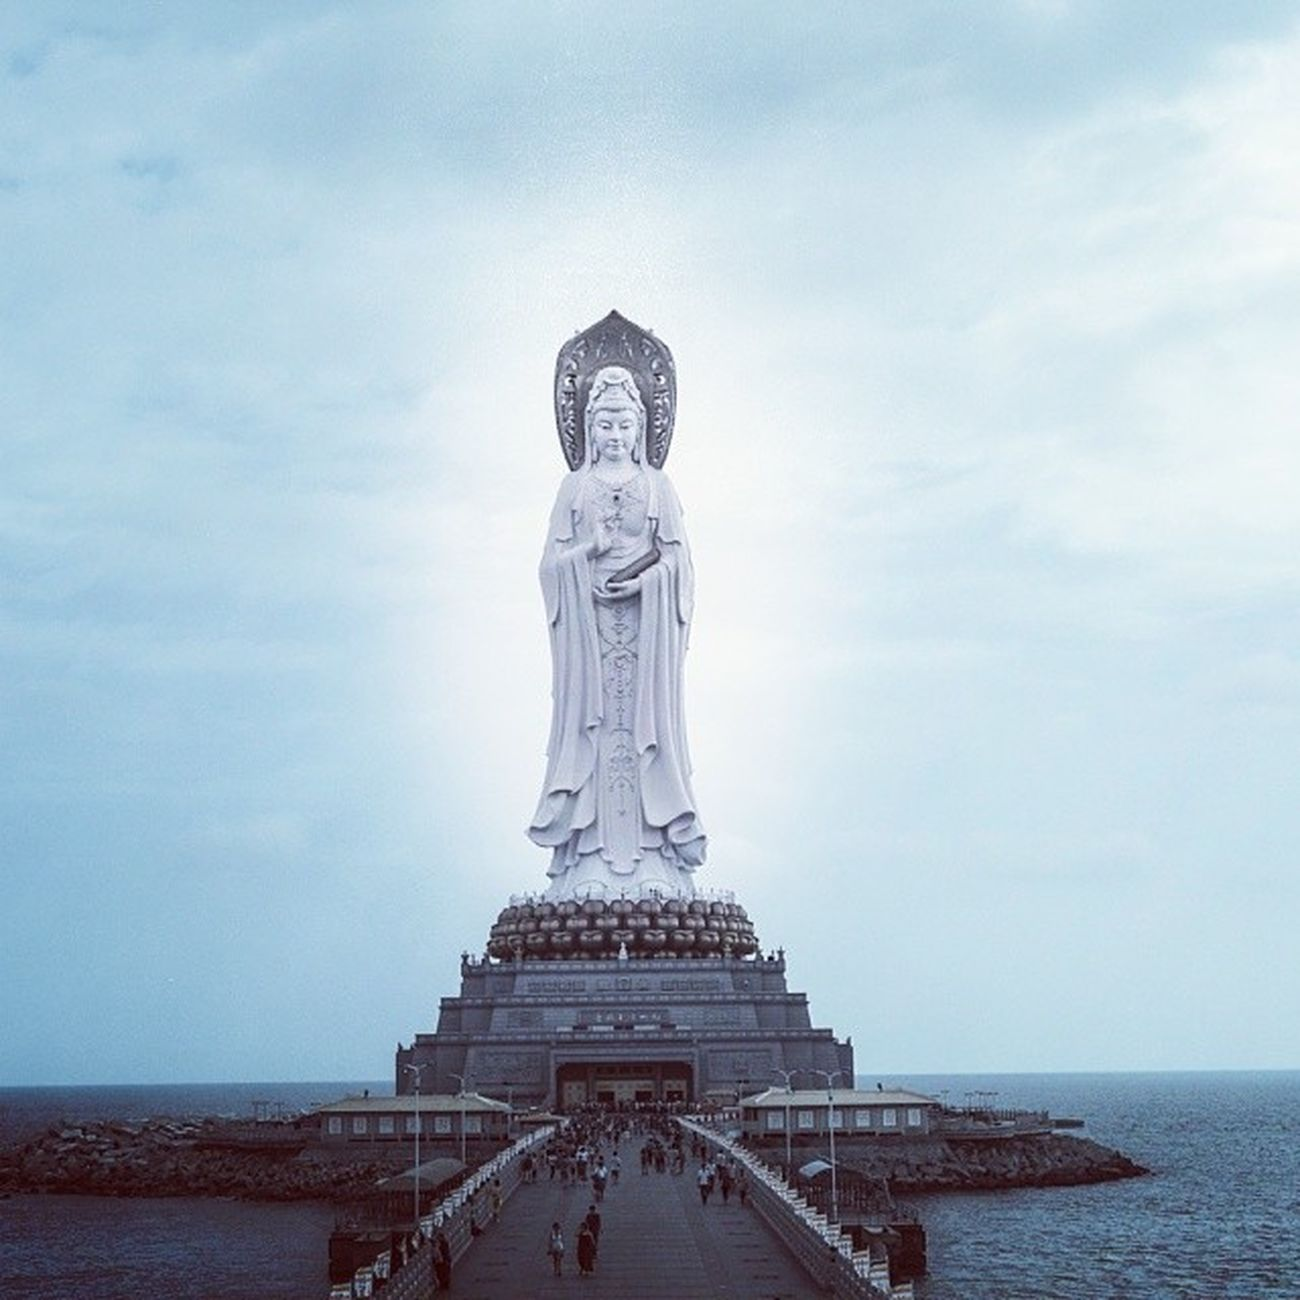 观音 Buddha Sea Tall sanya hainan sculpture pray sky open care stand south